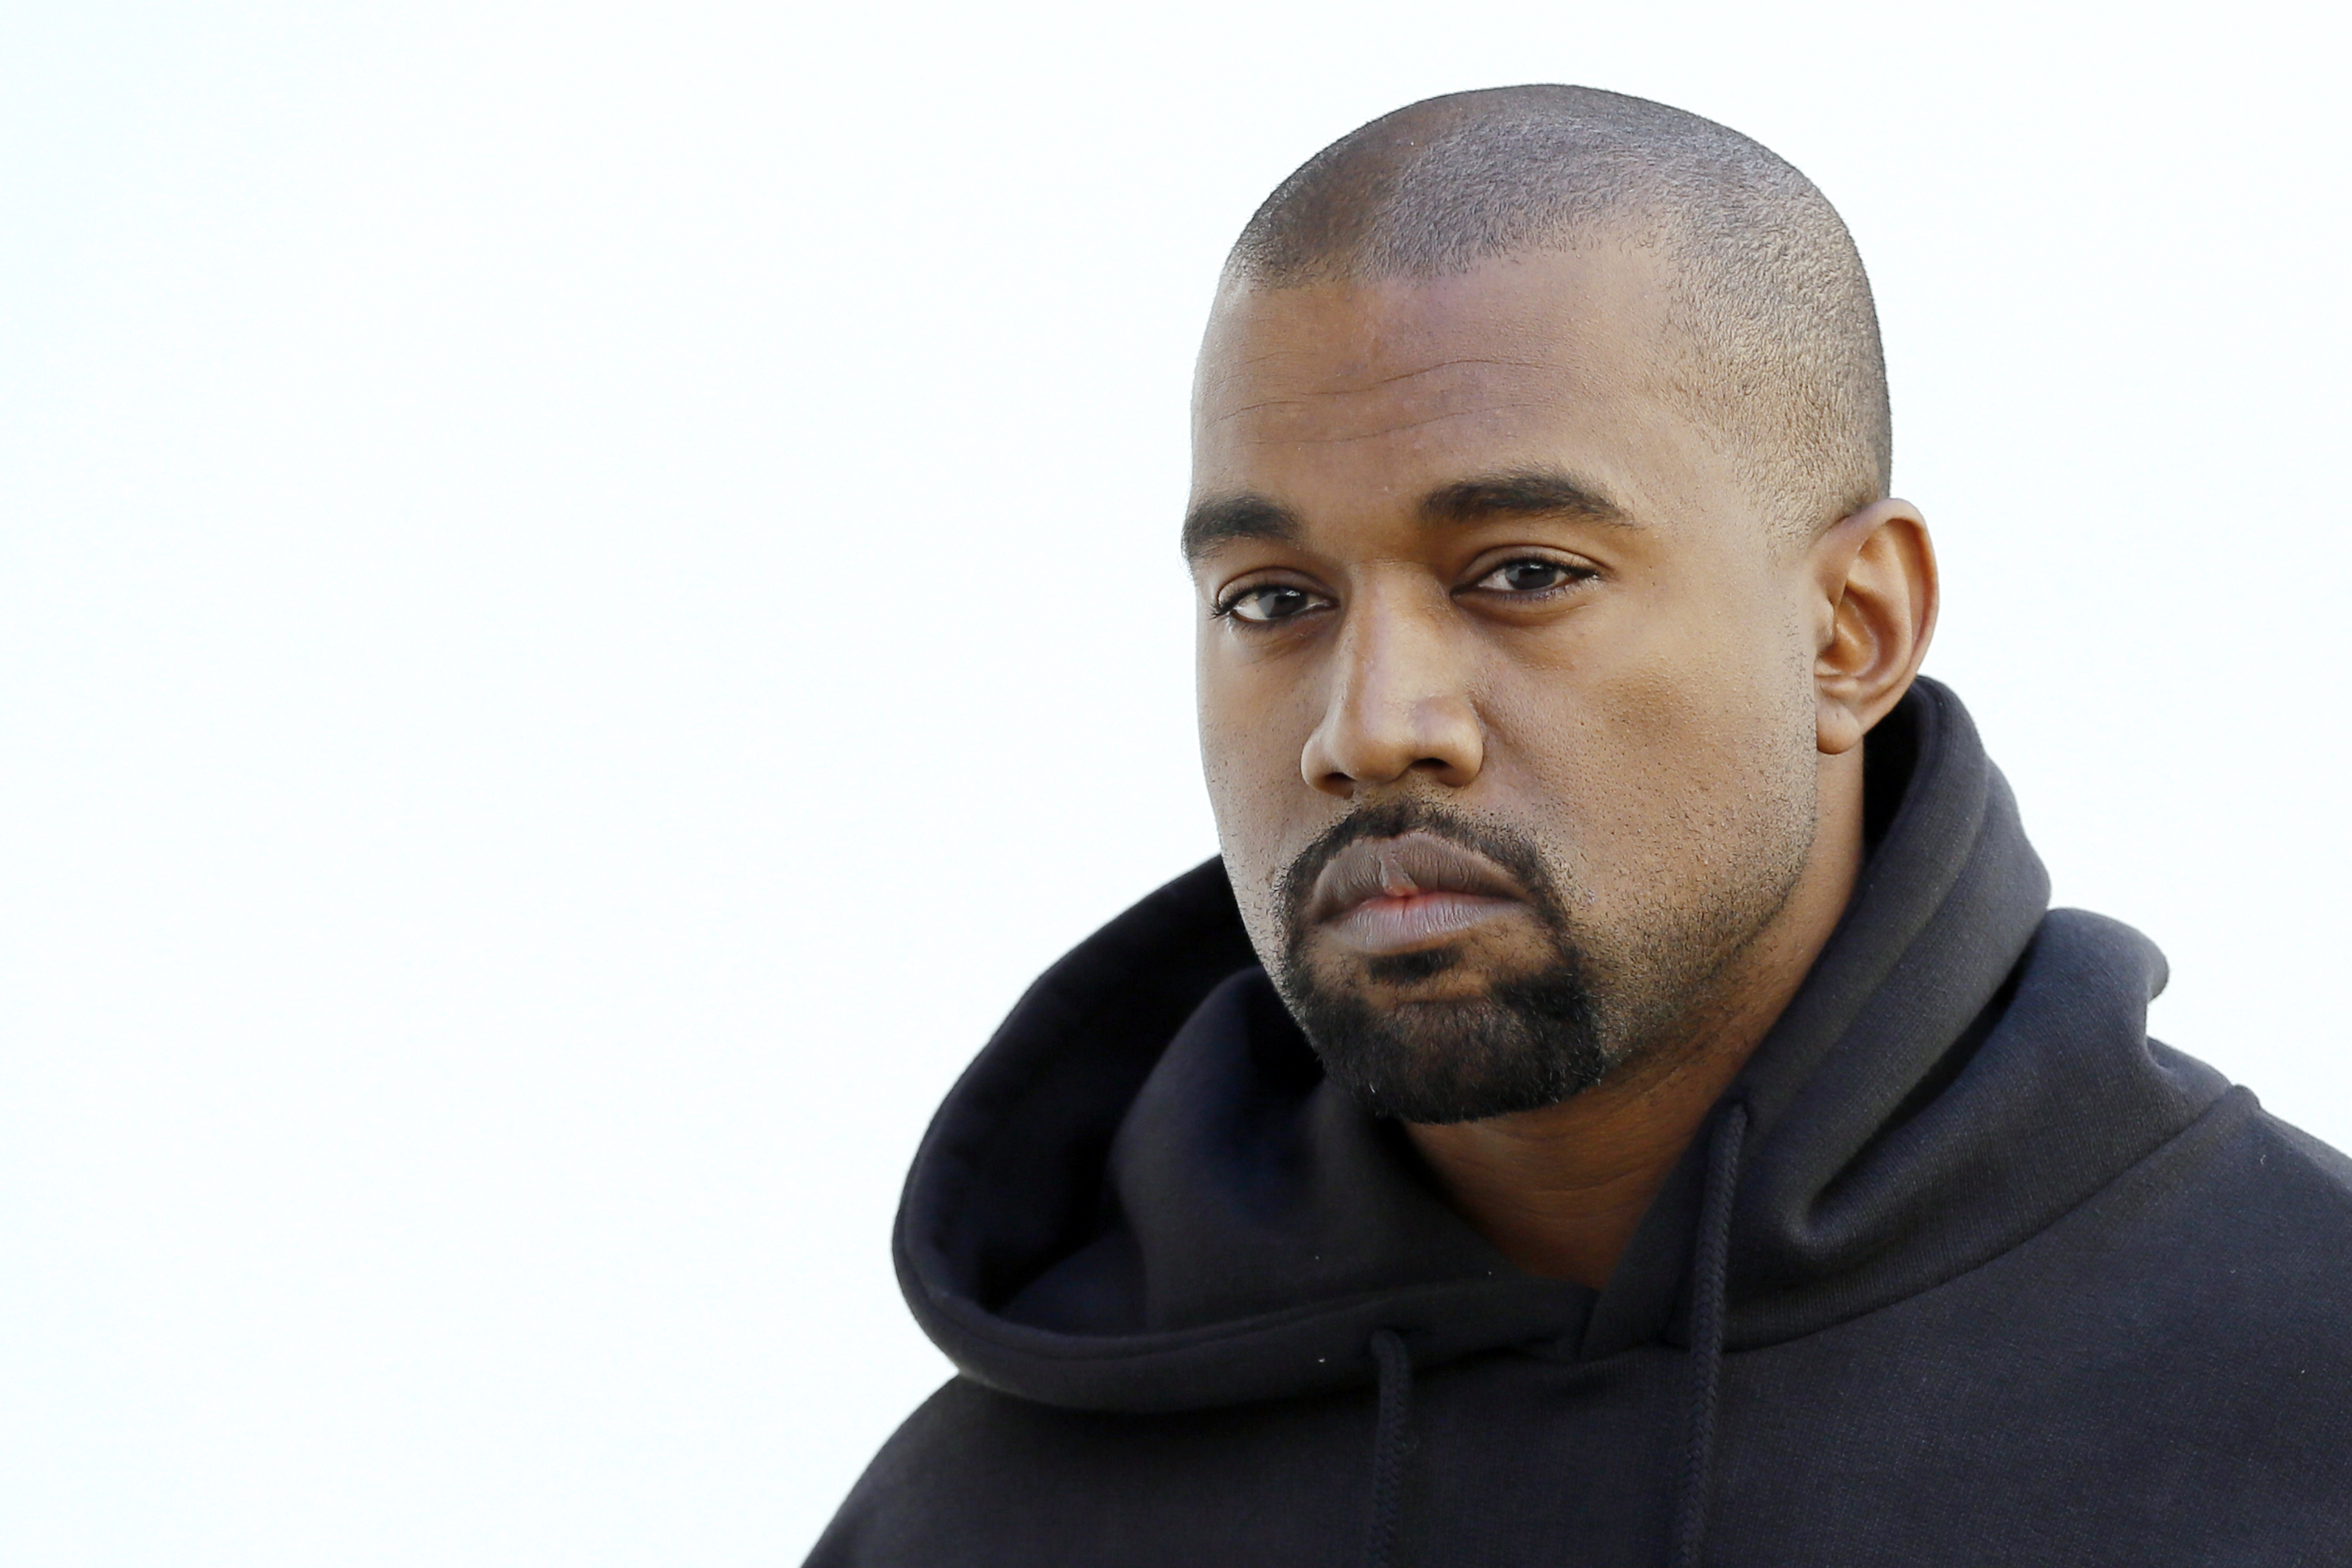 American rapper Kanye West poses before Christian Dior 2015-2016 fall/winter fashion show on March 6, 2015 in Paris.